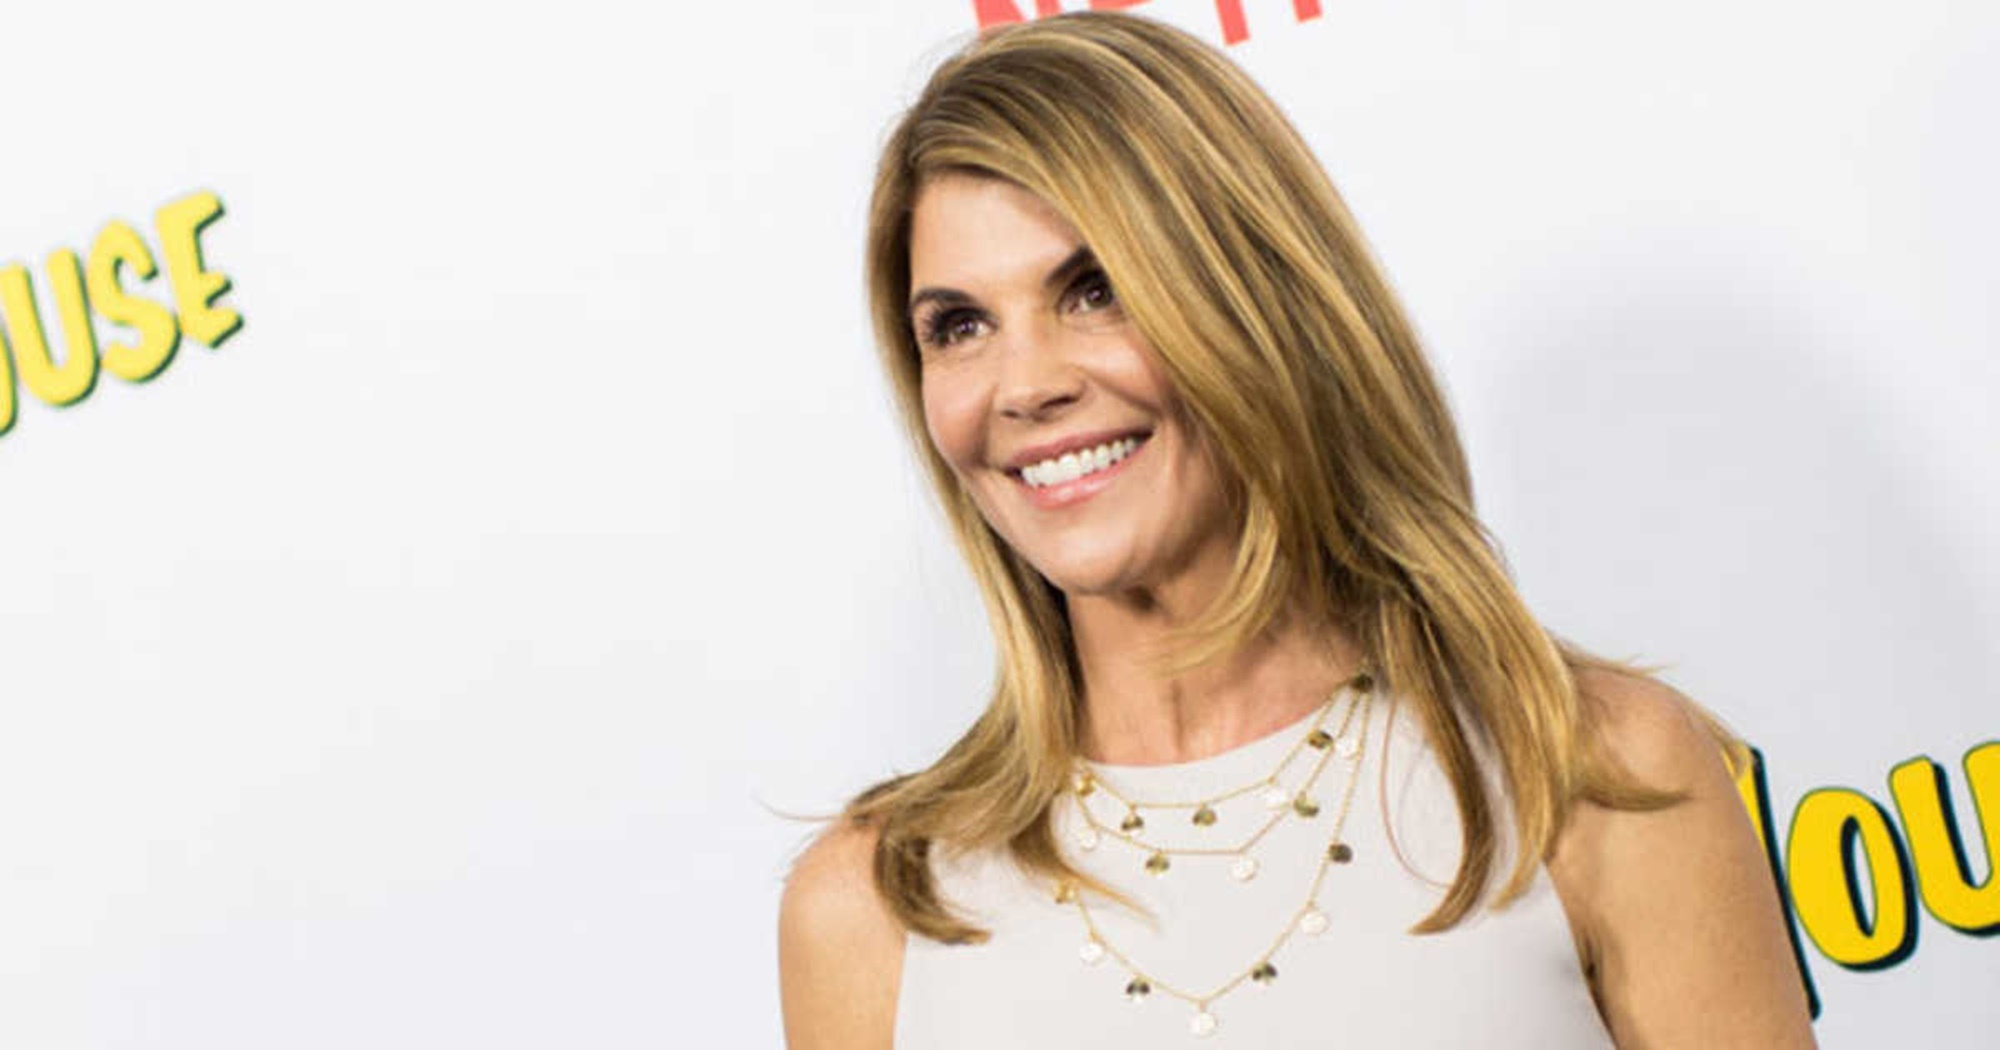 Candace Cameron Bure Shows Support for Co-Star Lori Loughlin